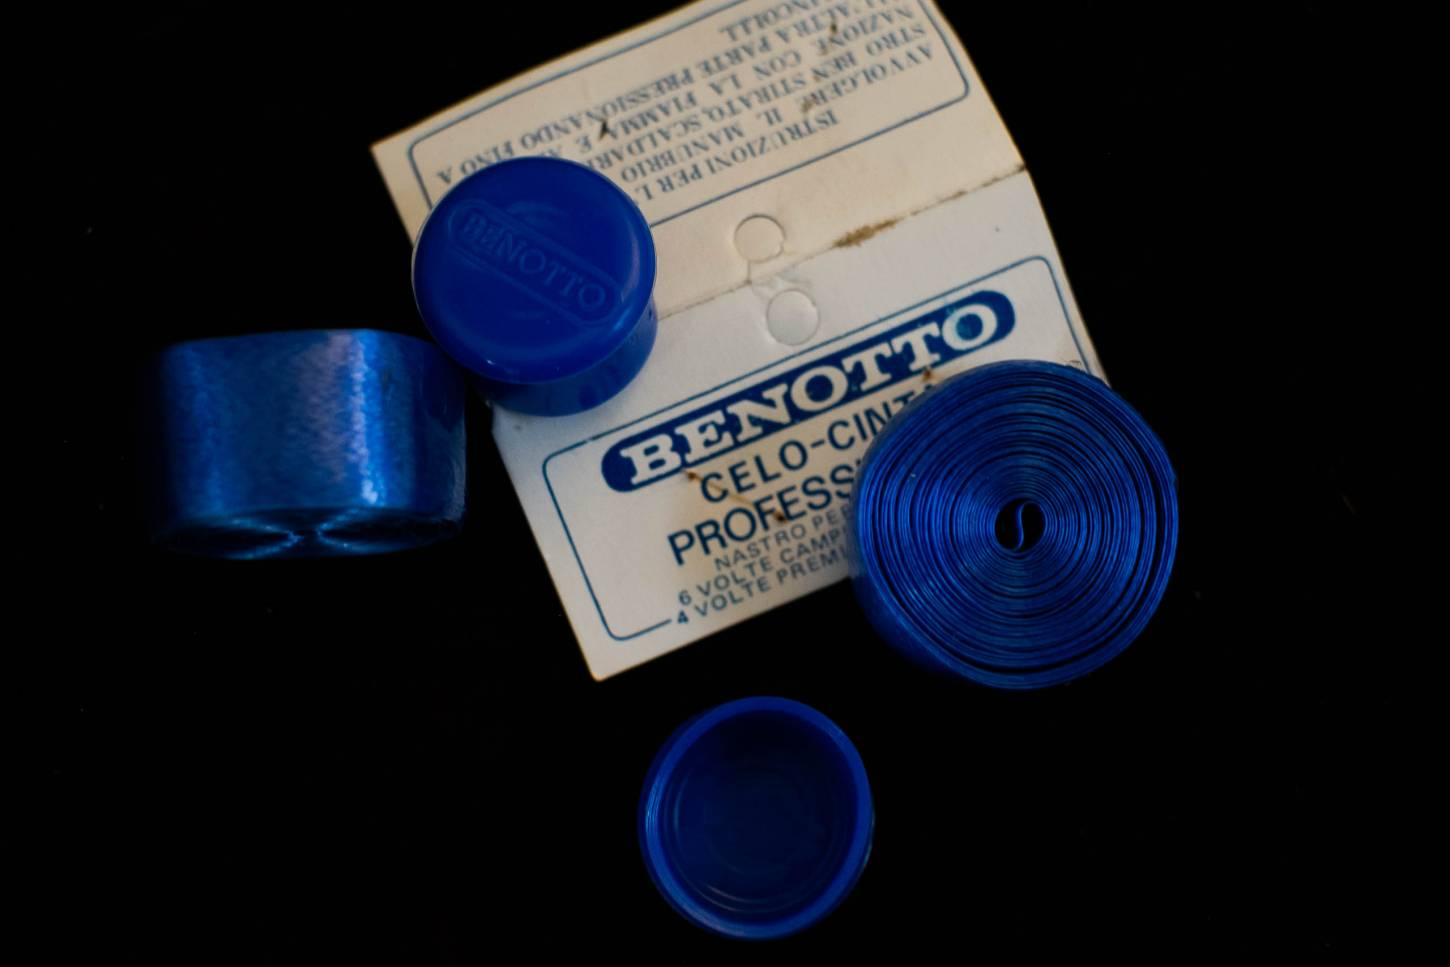 NOS Benotto Professionale Celo Vintage Lenkerband Handlebar Tape in gelb, rot oder blau